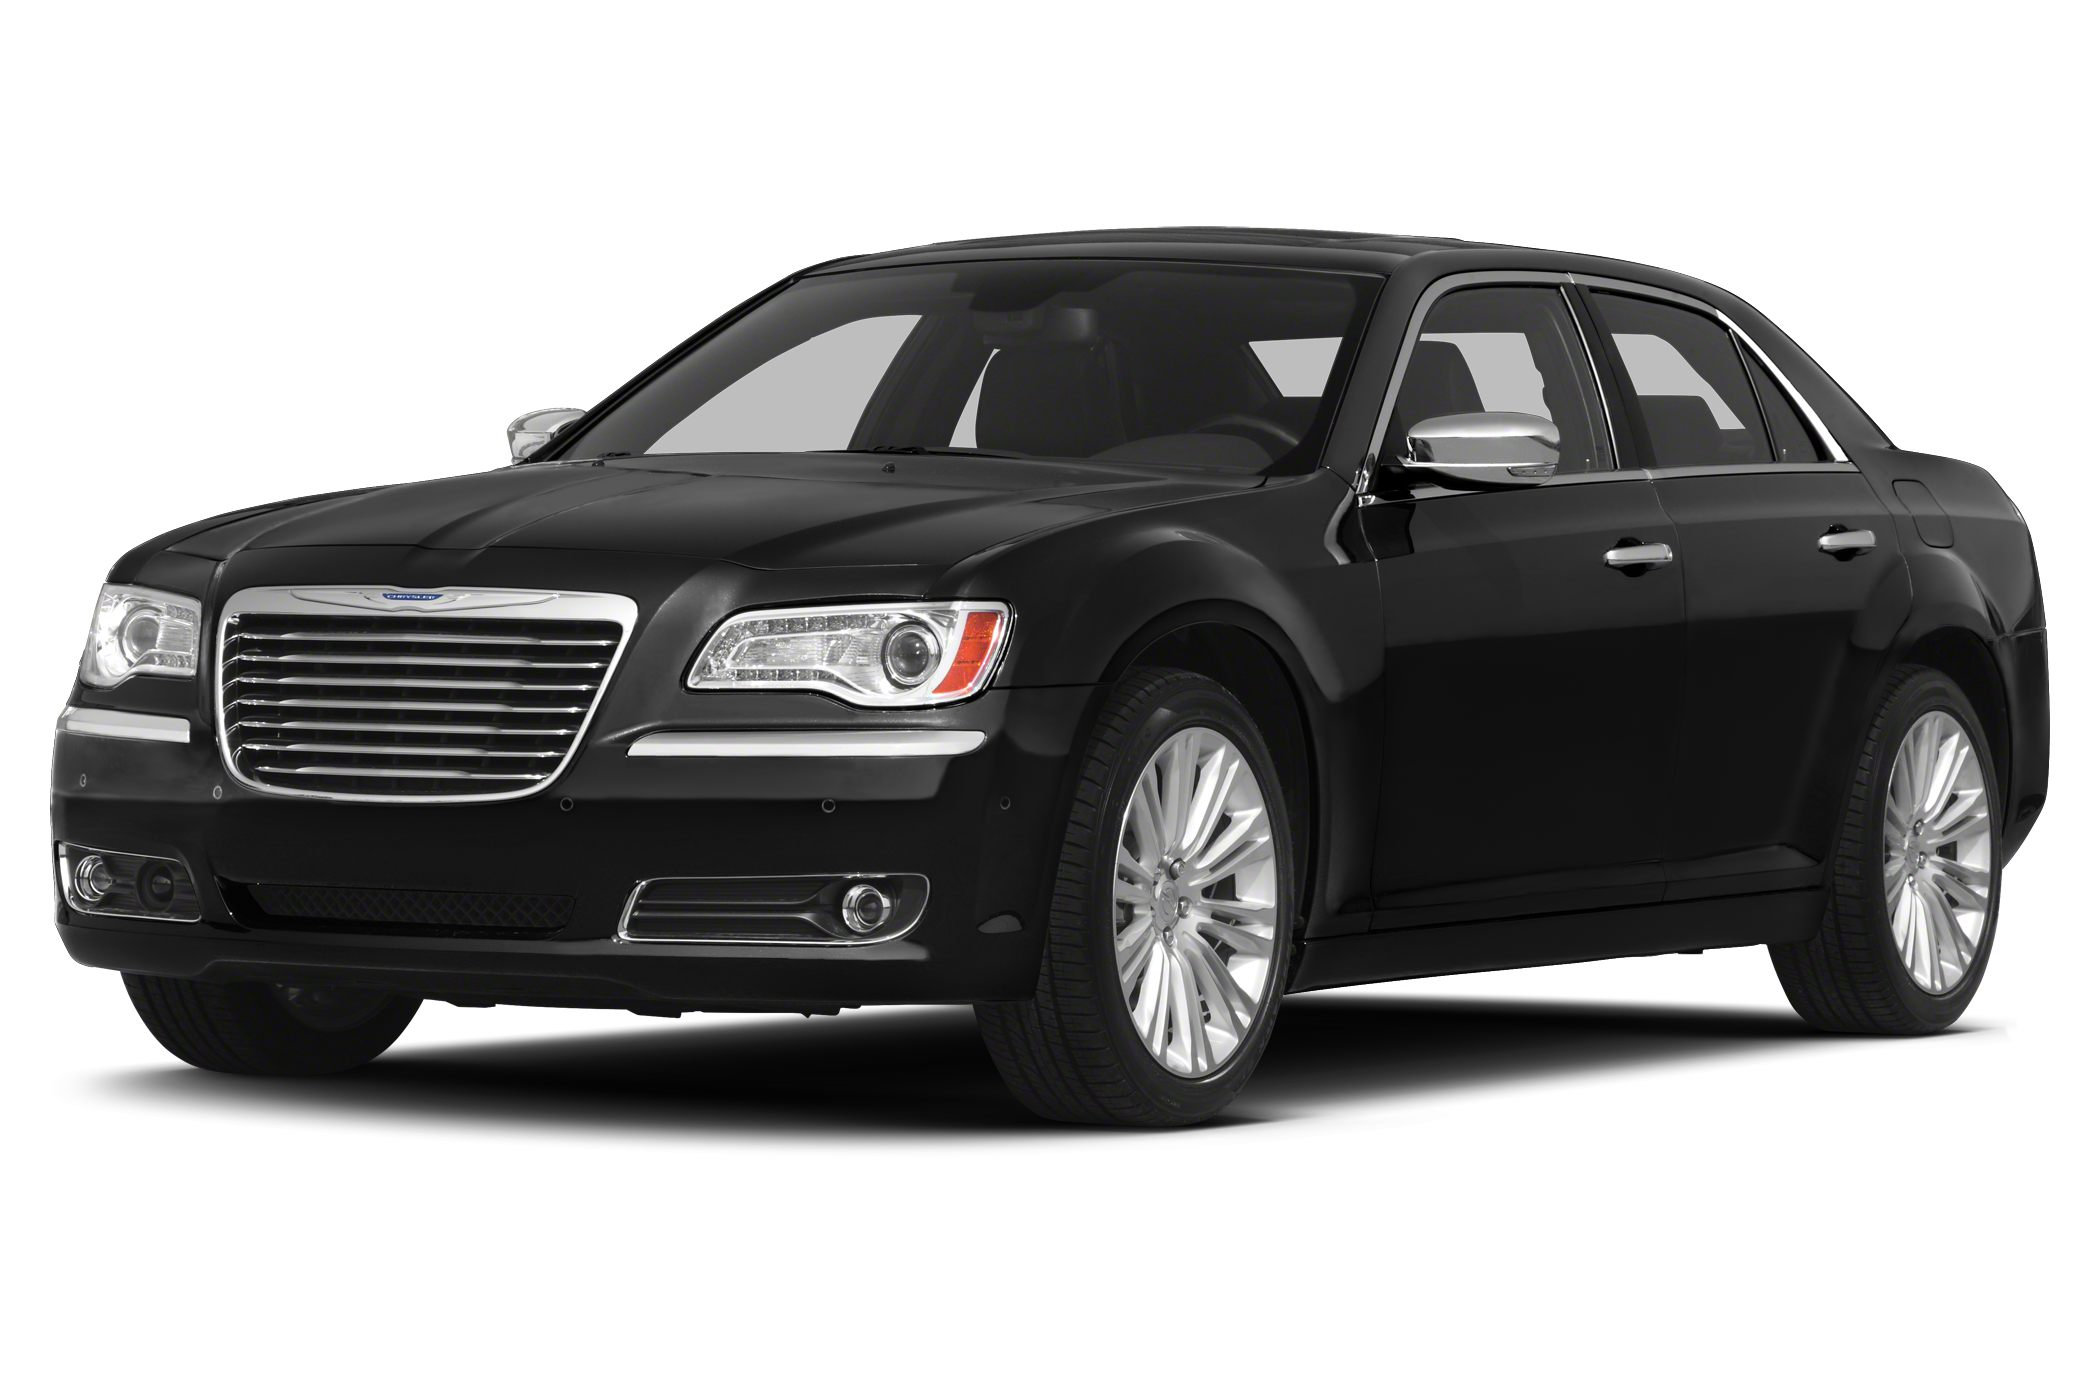 2013 Chrysler 300 Base Sedan for sale in Brooklyn for $18,990 with 30,725 miles